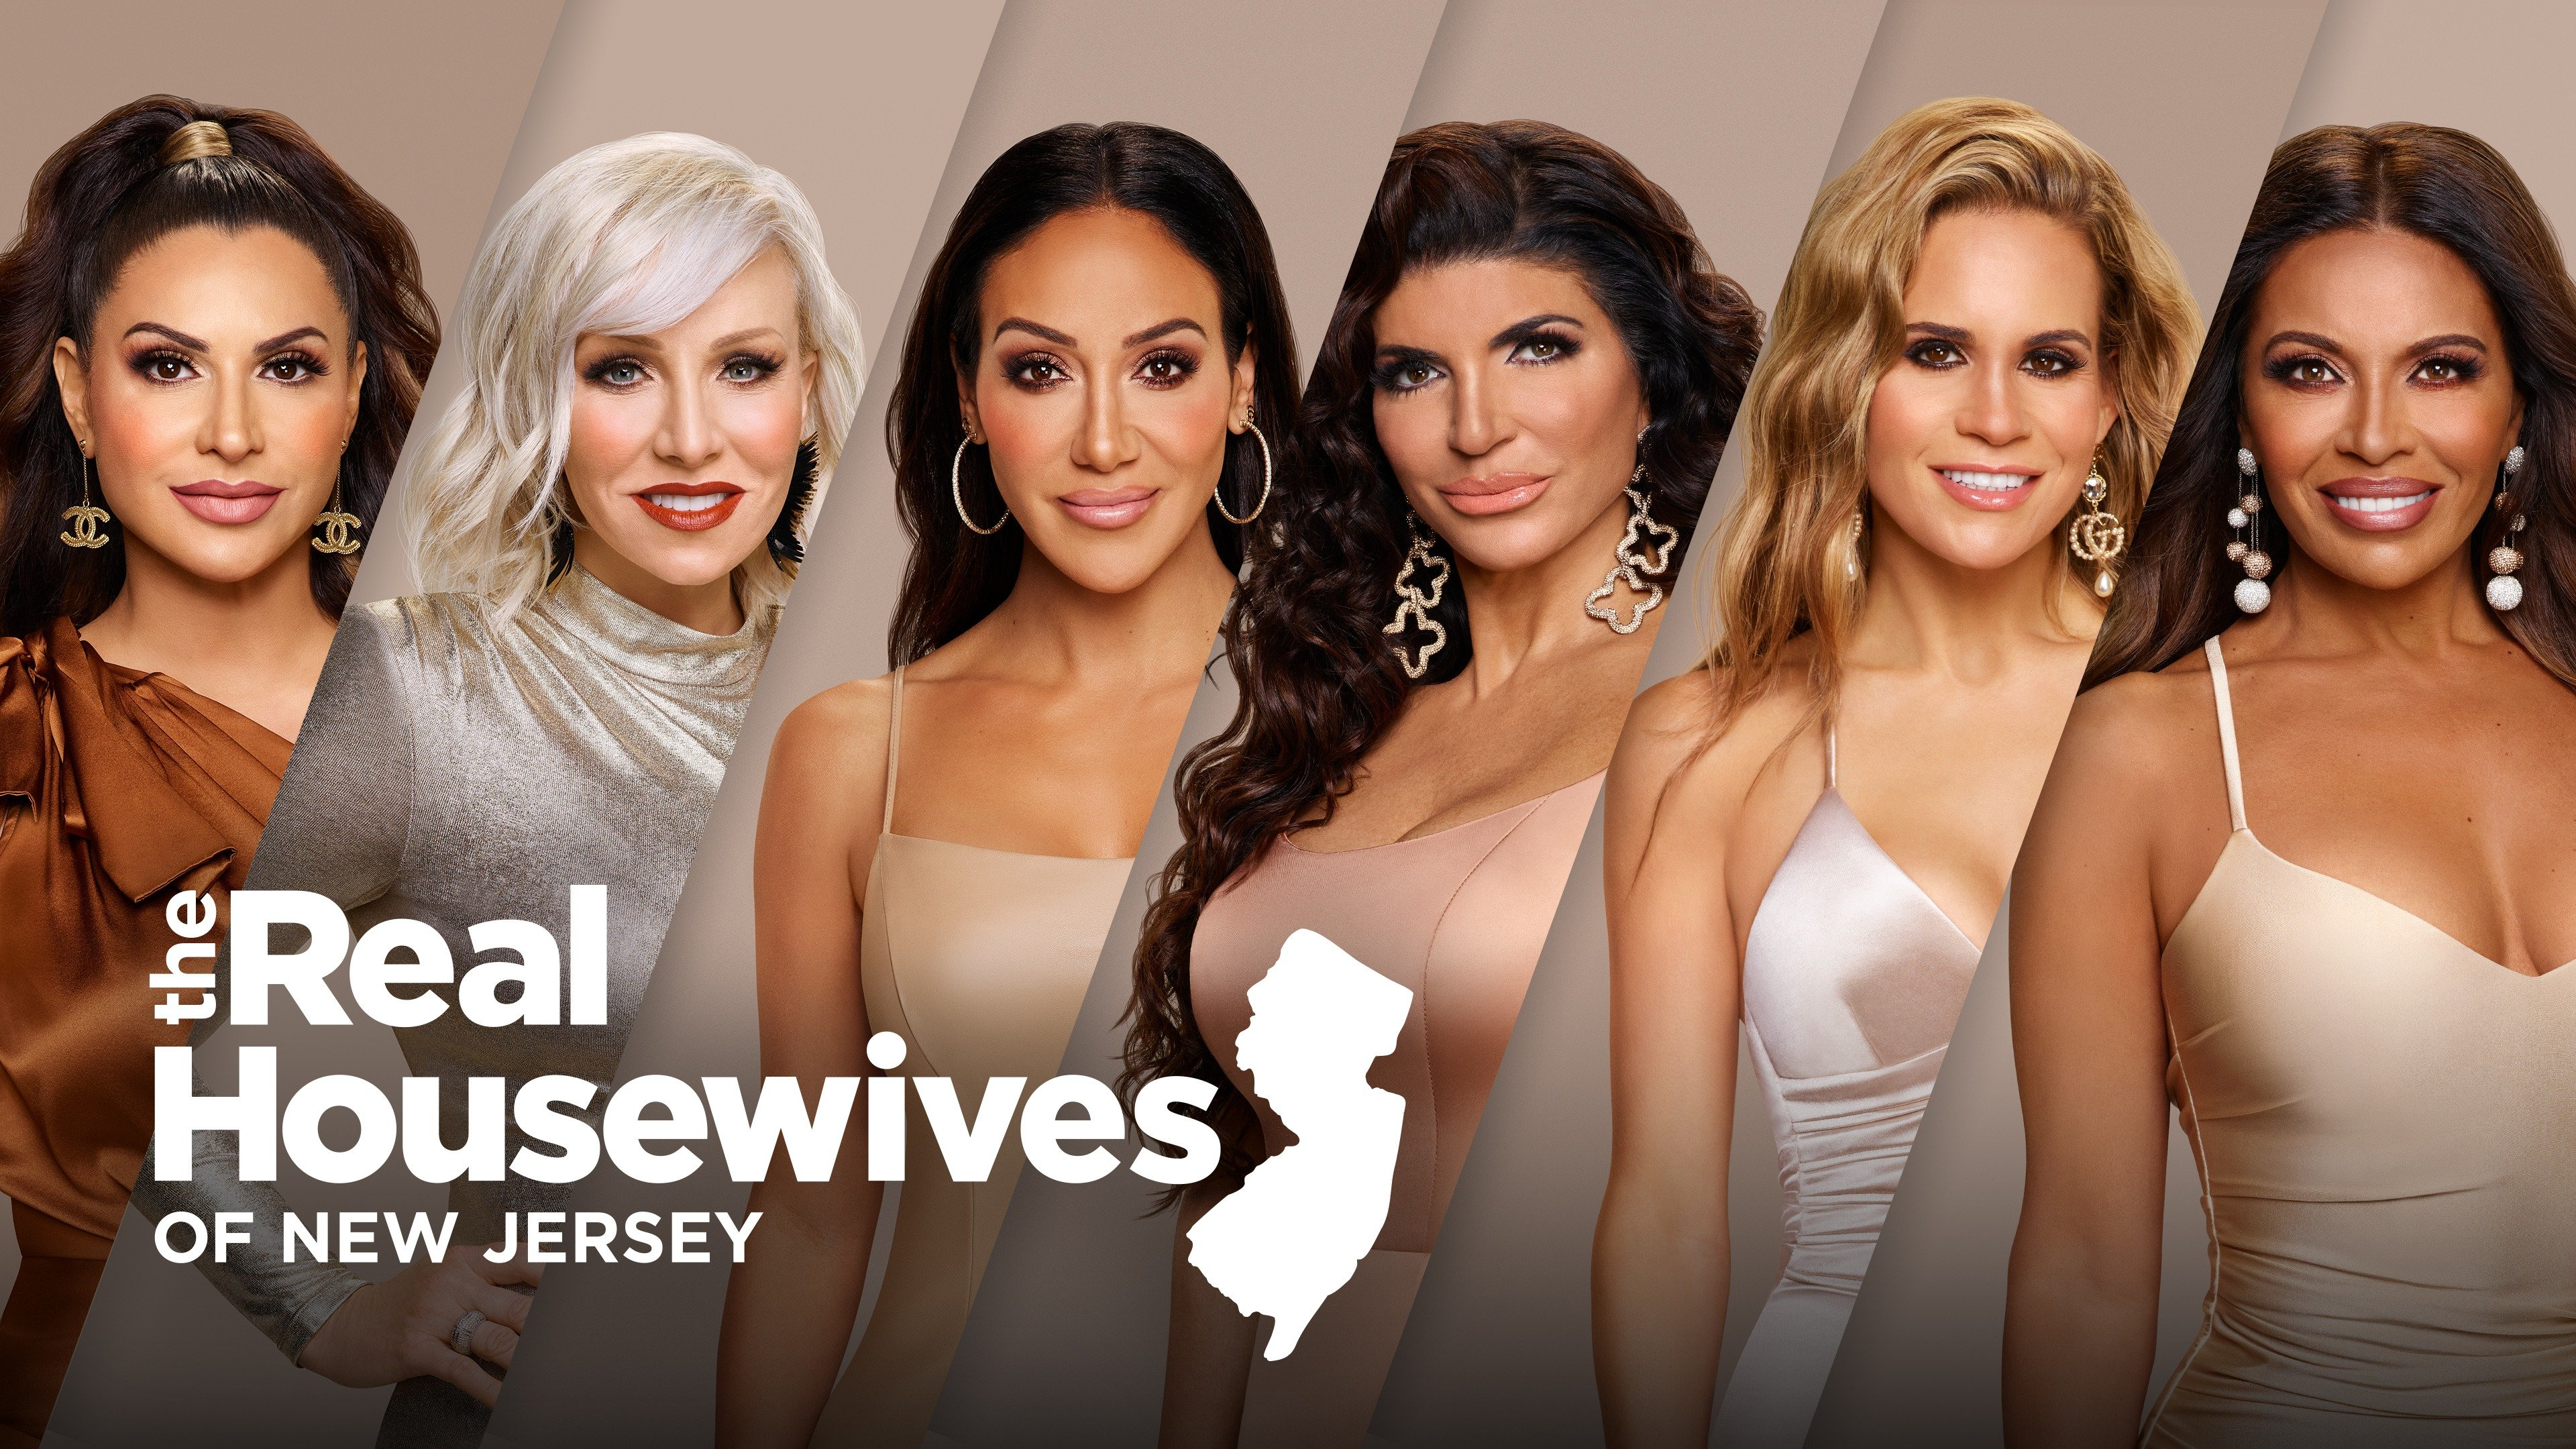 The Real Housewives of New Jersey - Bravo